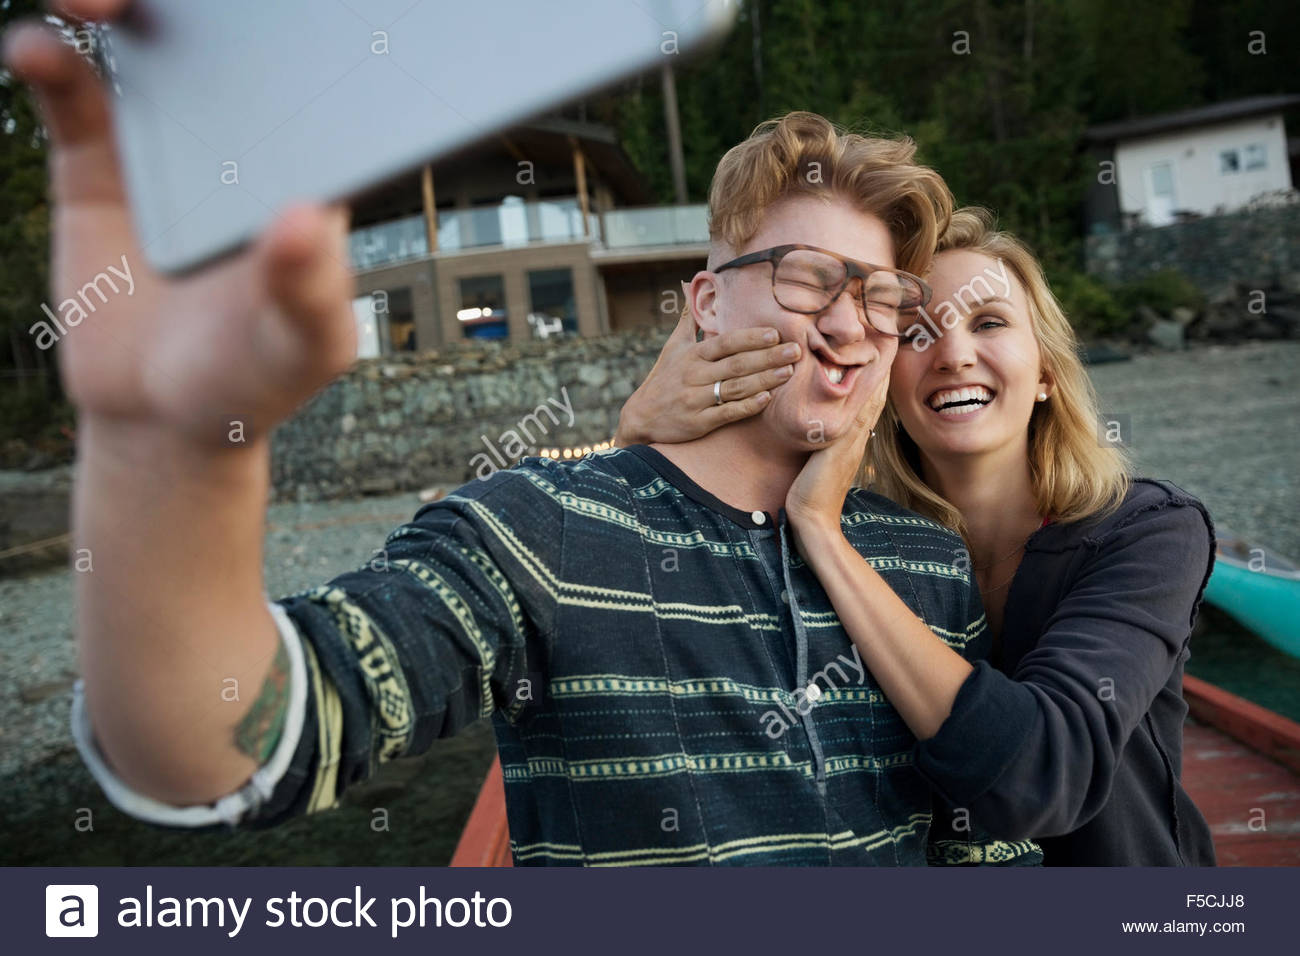 Playful couple making a face taking selfie - Stock Image